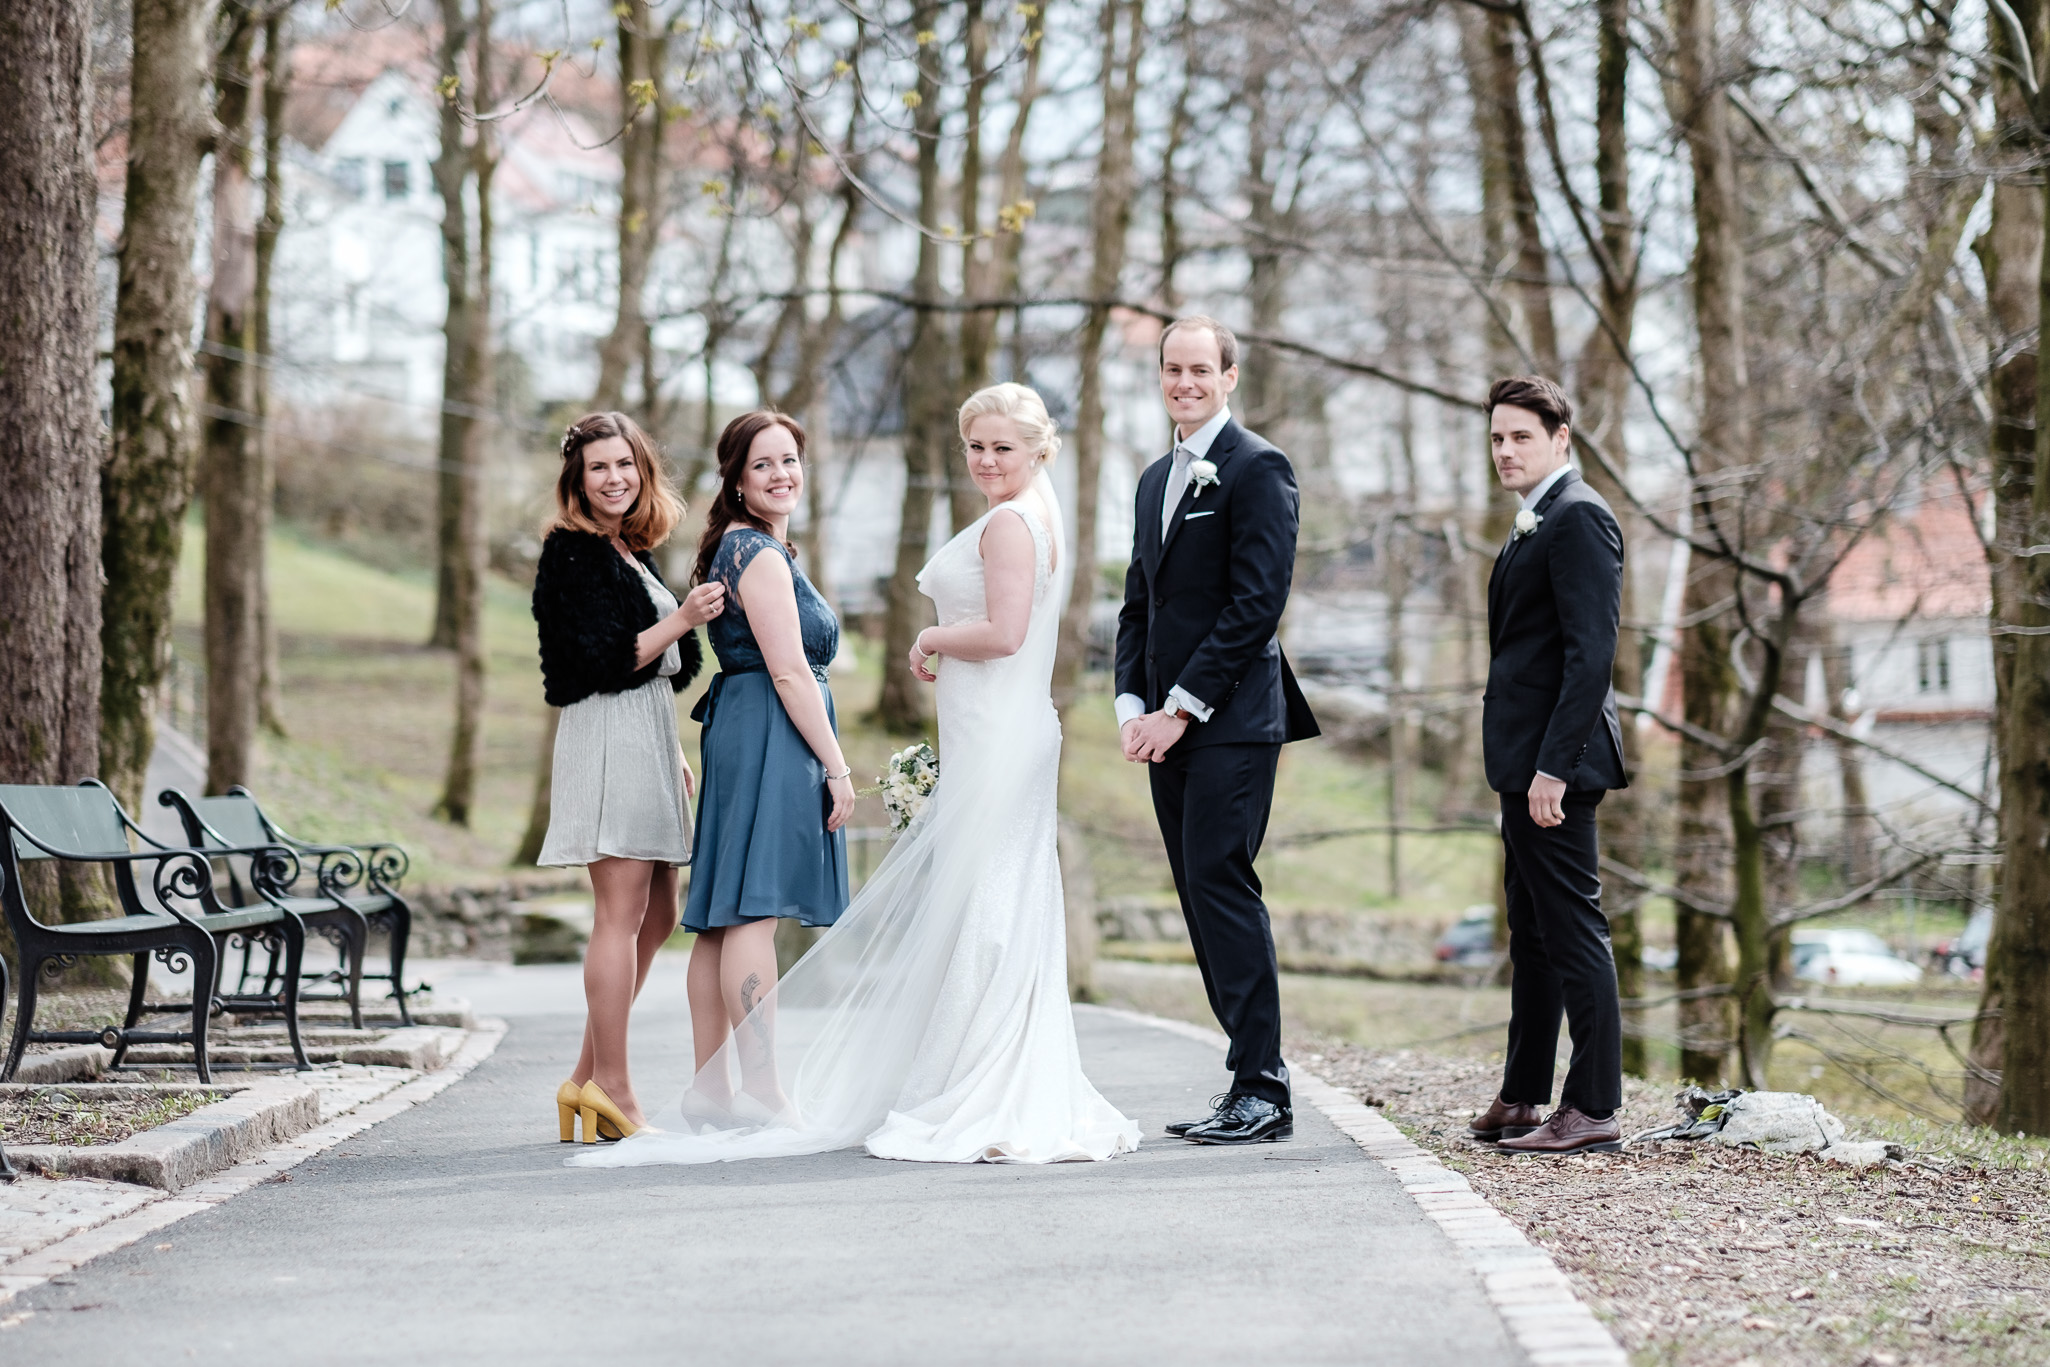 Click to enlarge image alida-jarle-bergen-ottossonphoto-1022.jpg